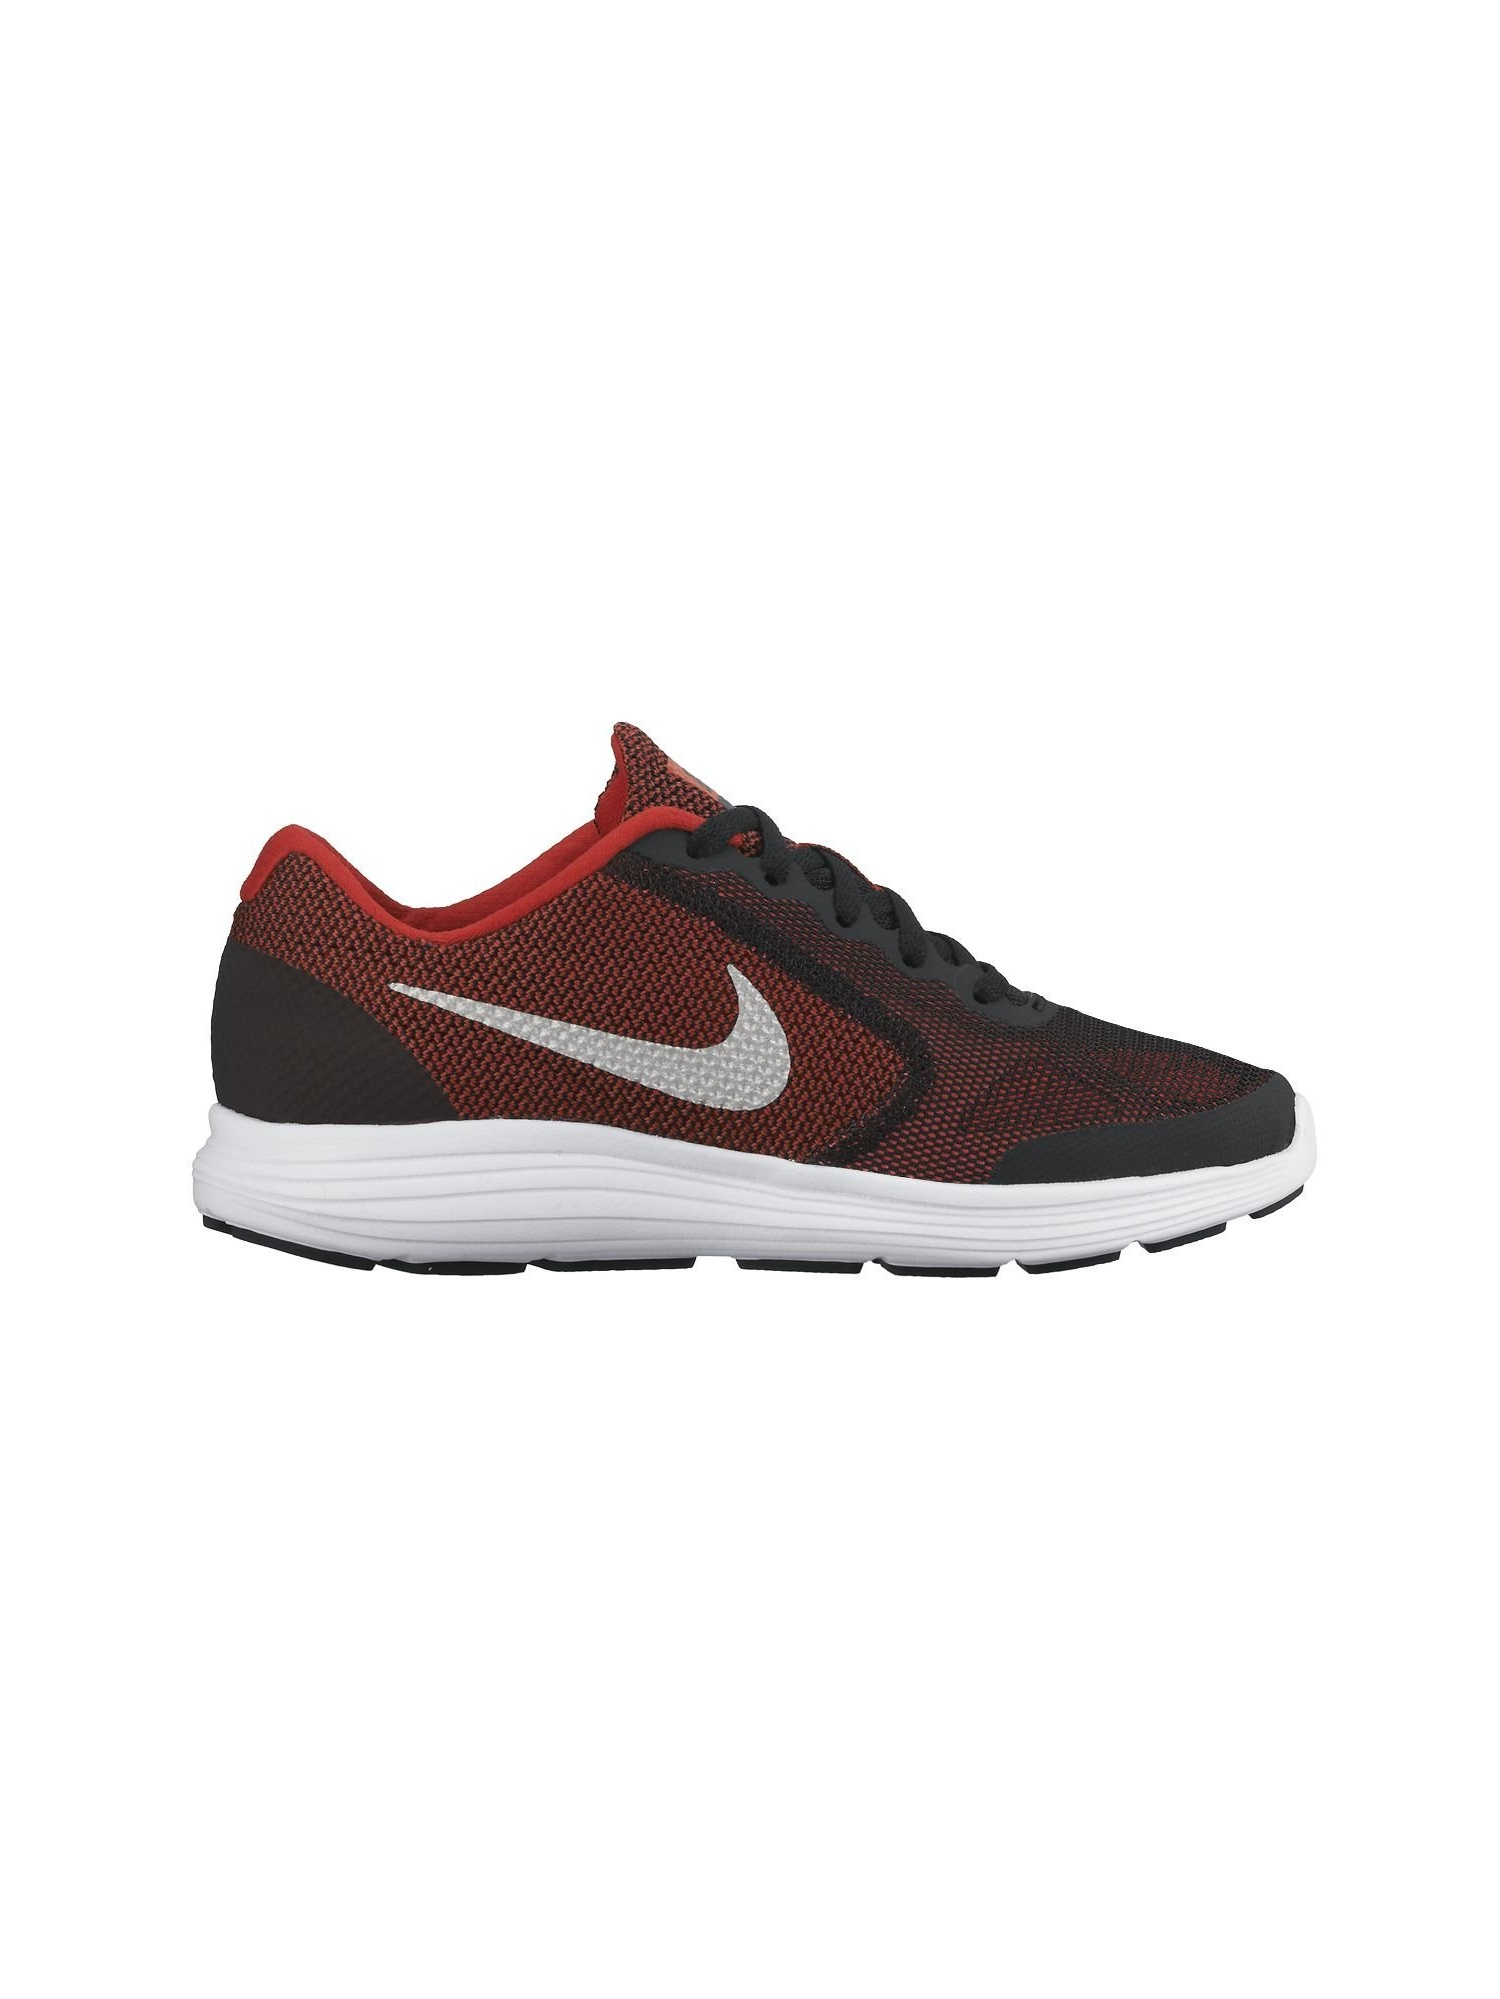 Boy's Nike Revolution 3 Wide (GS) Running Shoe Red/Black/White/Metallic Silver Size